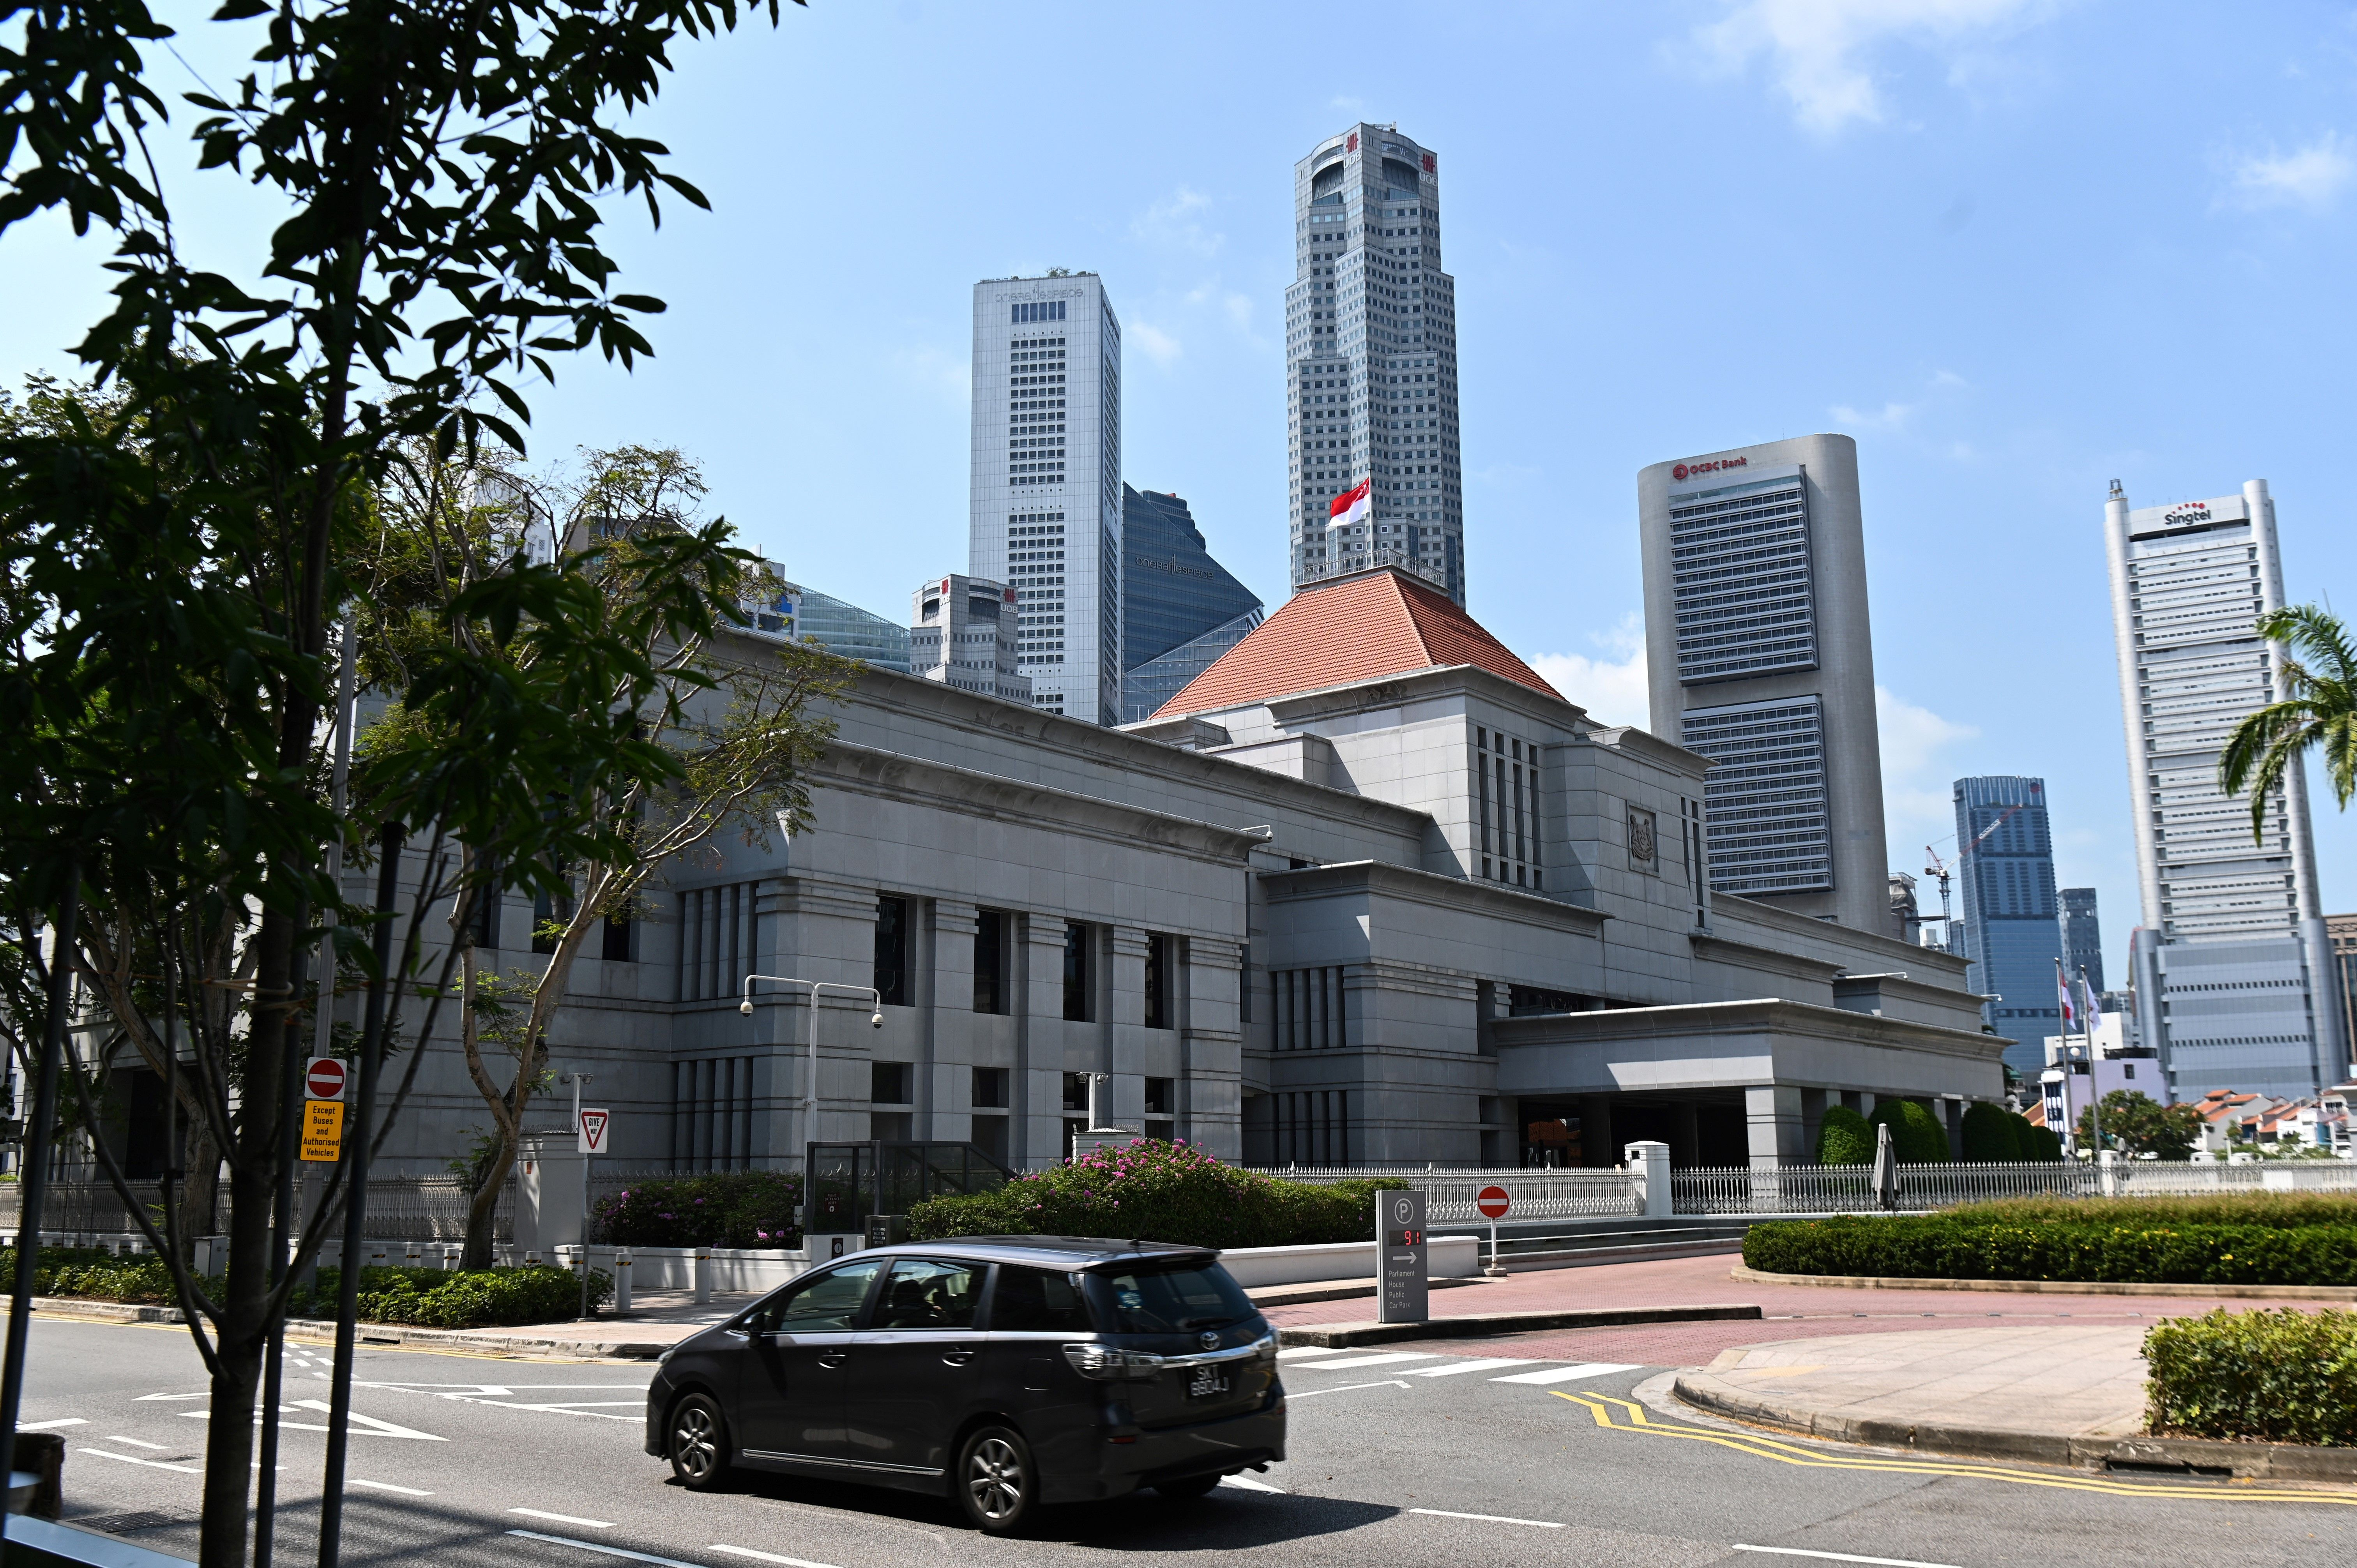 The national flag flying on the roof of the Parliament House in Singapore